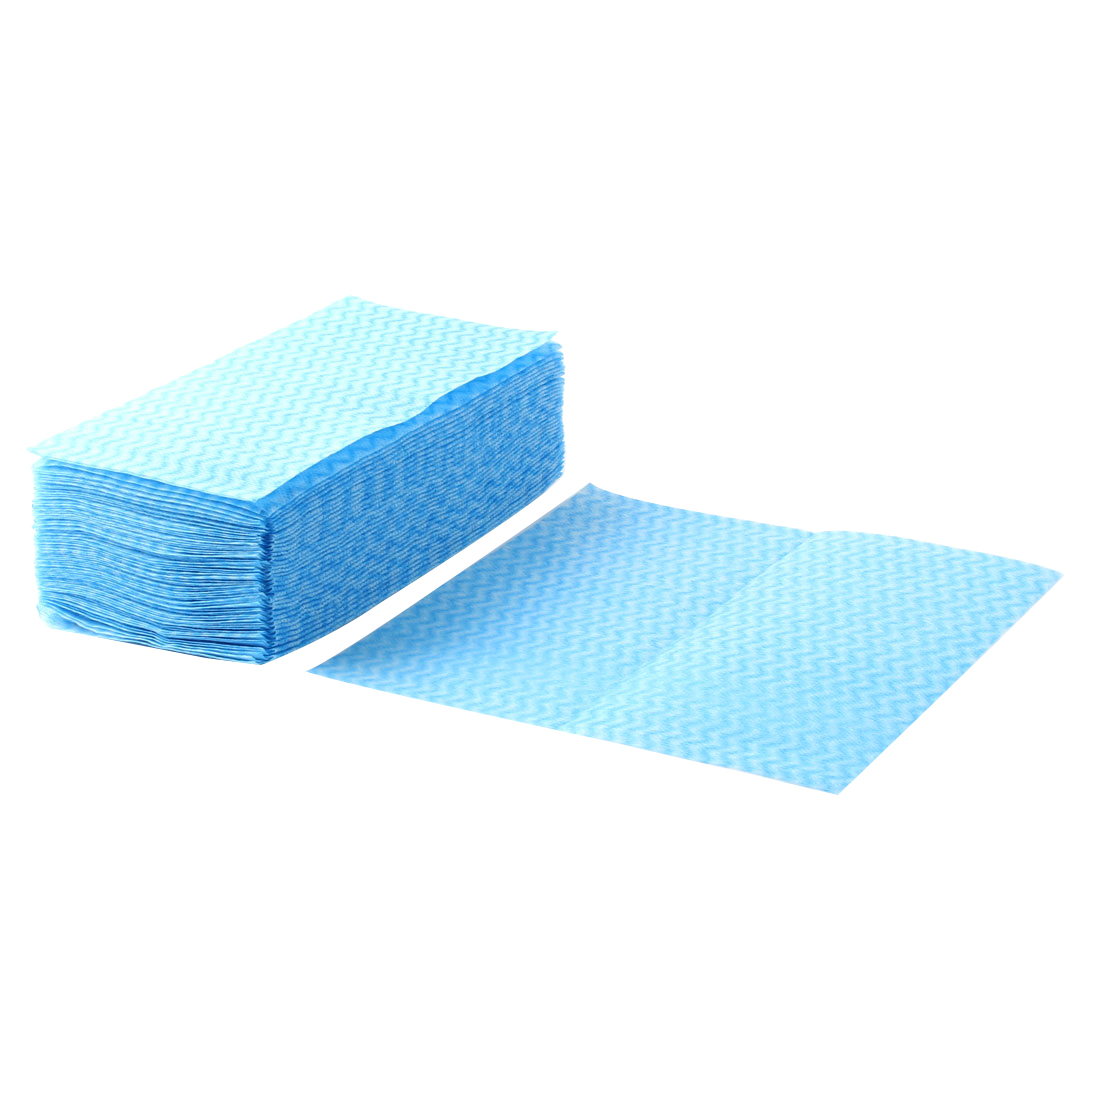 Kitchenware Rectangle Design Disposable Bowl Pot Dish Wiping Cleaning Cloth Blue 80pcs